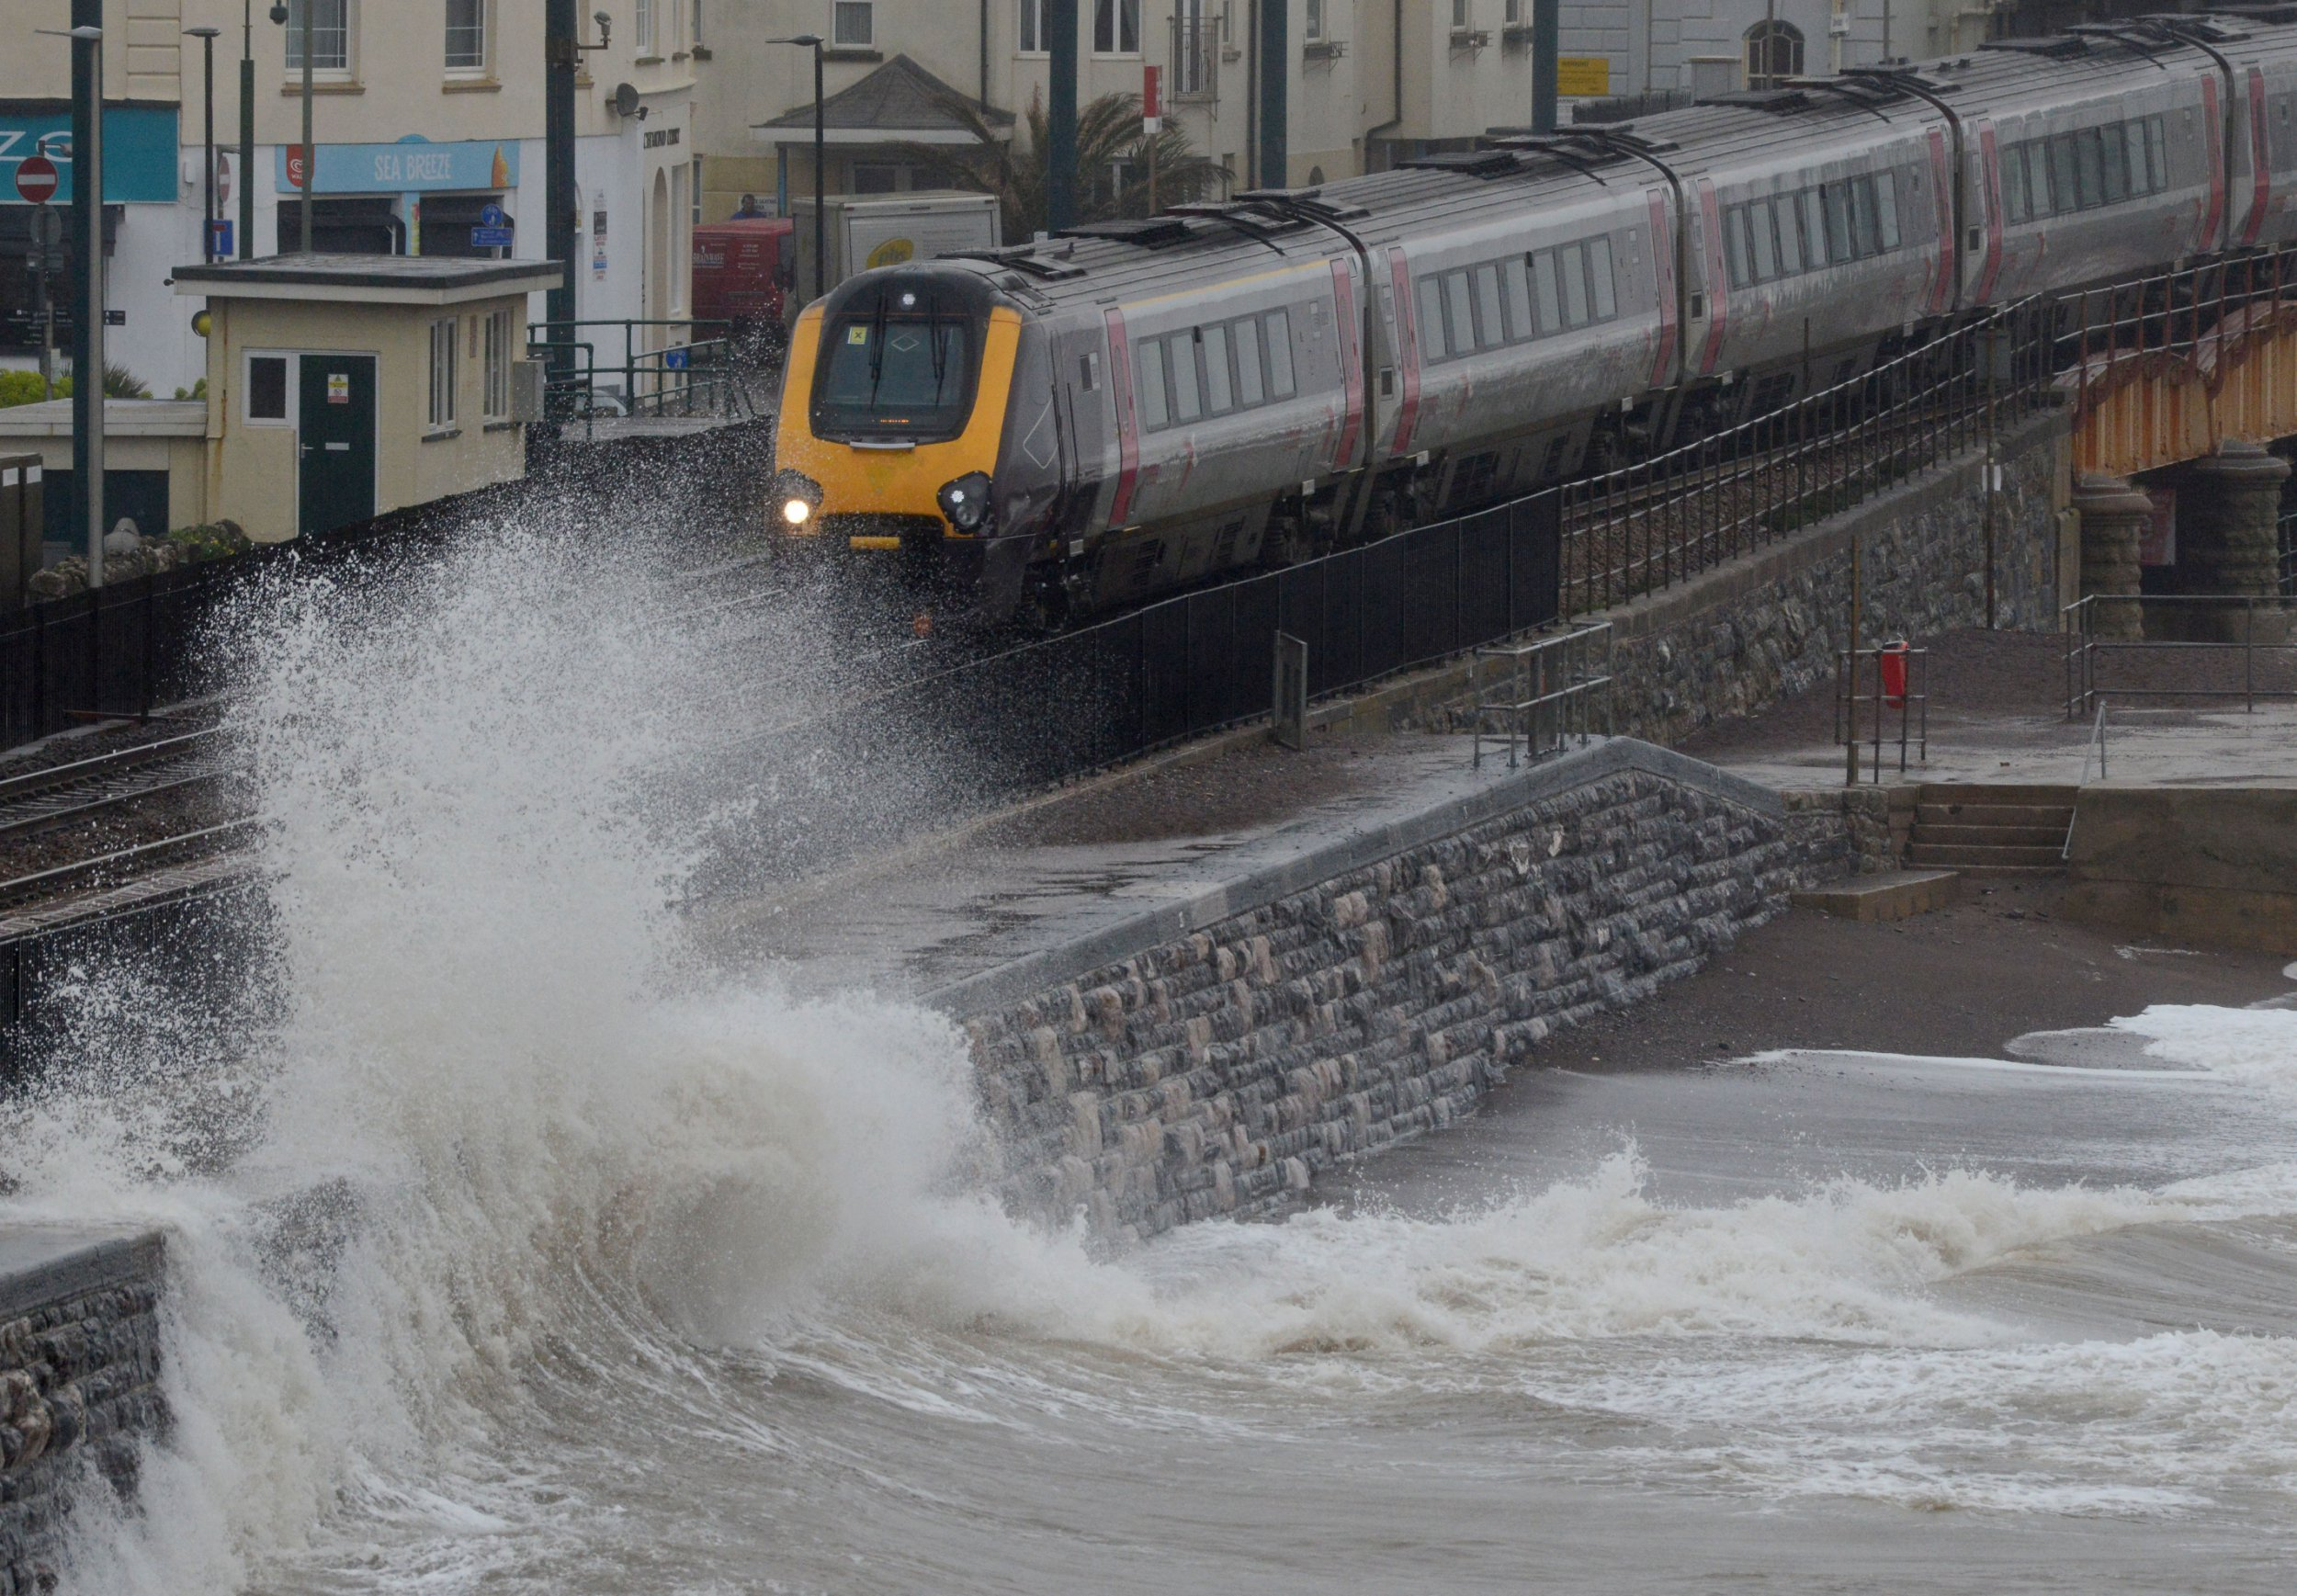 DAWLISH, ENGLAND - MARCH 12: Waves crash against the seafront and railway line on March 12, 2019 in Dawlish, United Kingdom. Met Office issues yellow warnings as Storm Gareth is forecast to bring potentially disruptive wet and windy weather which could cause travel delays and power cuts. (Photo by Finnbarr Webster/Getty Images)